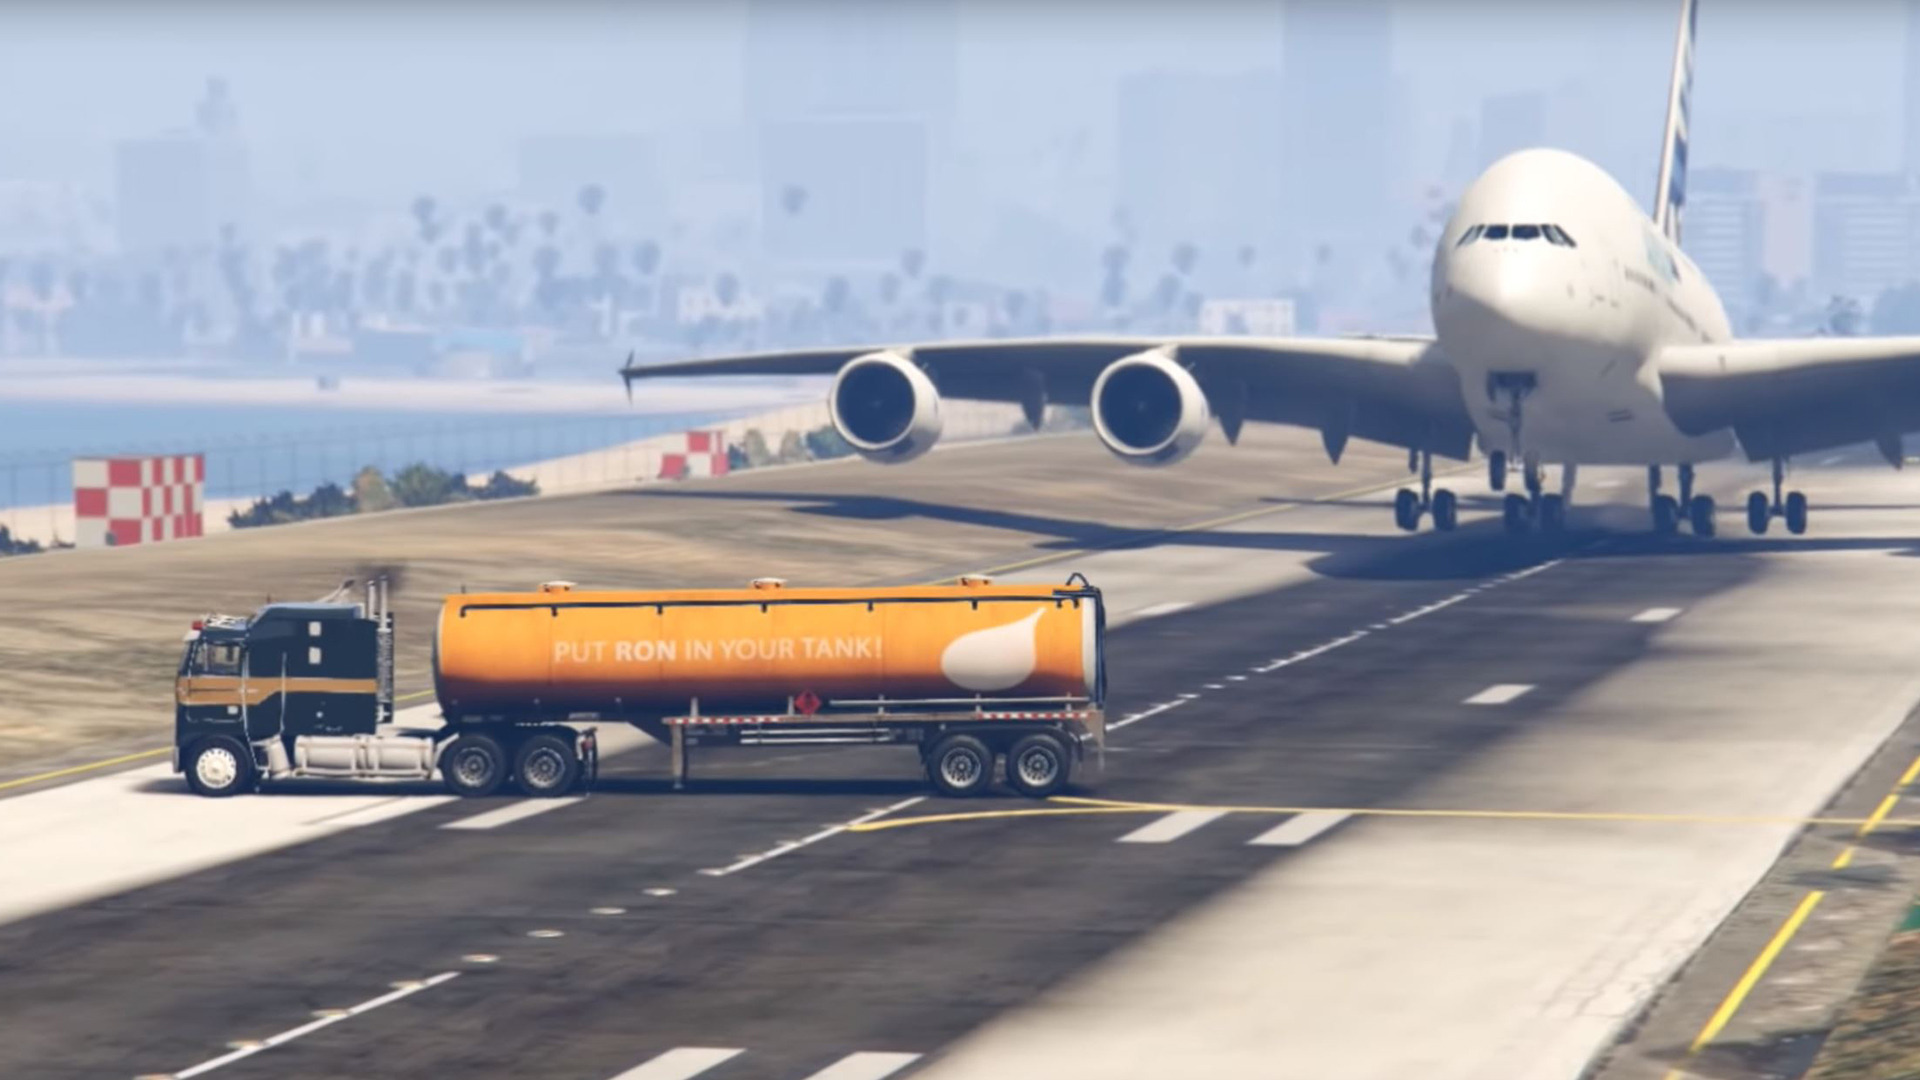 Pakistani politician mistakes a GTA 5 stunt video for real